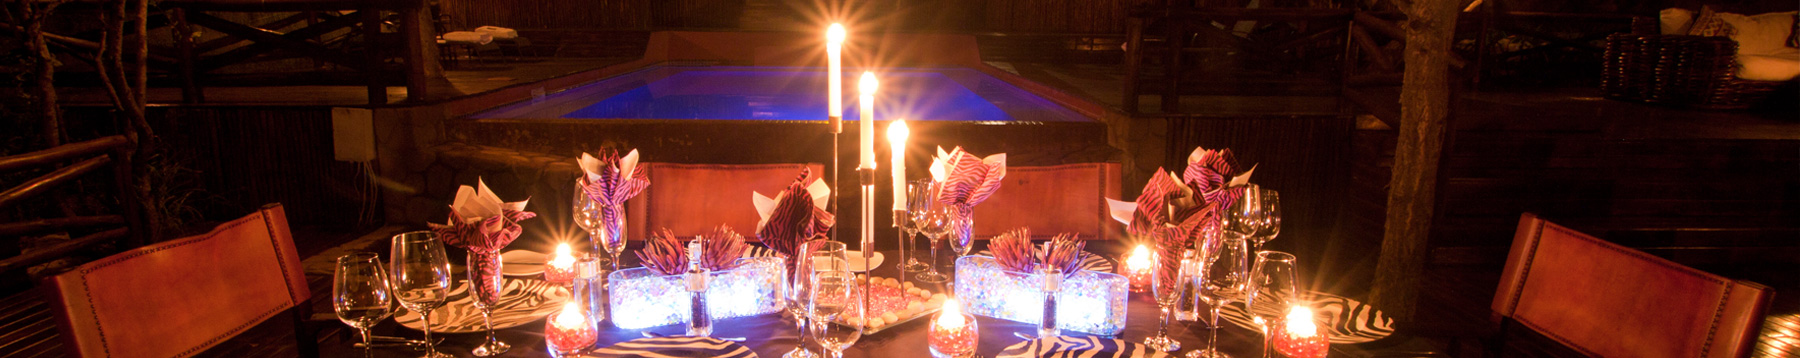 Table at Naledi at night